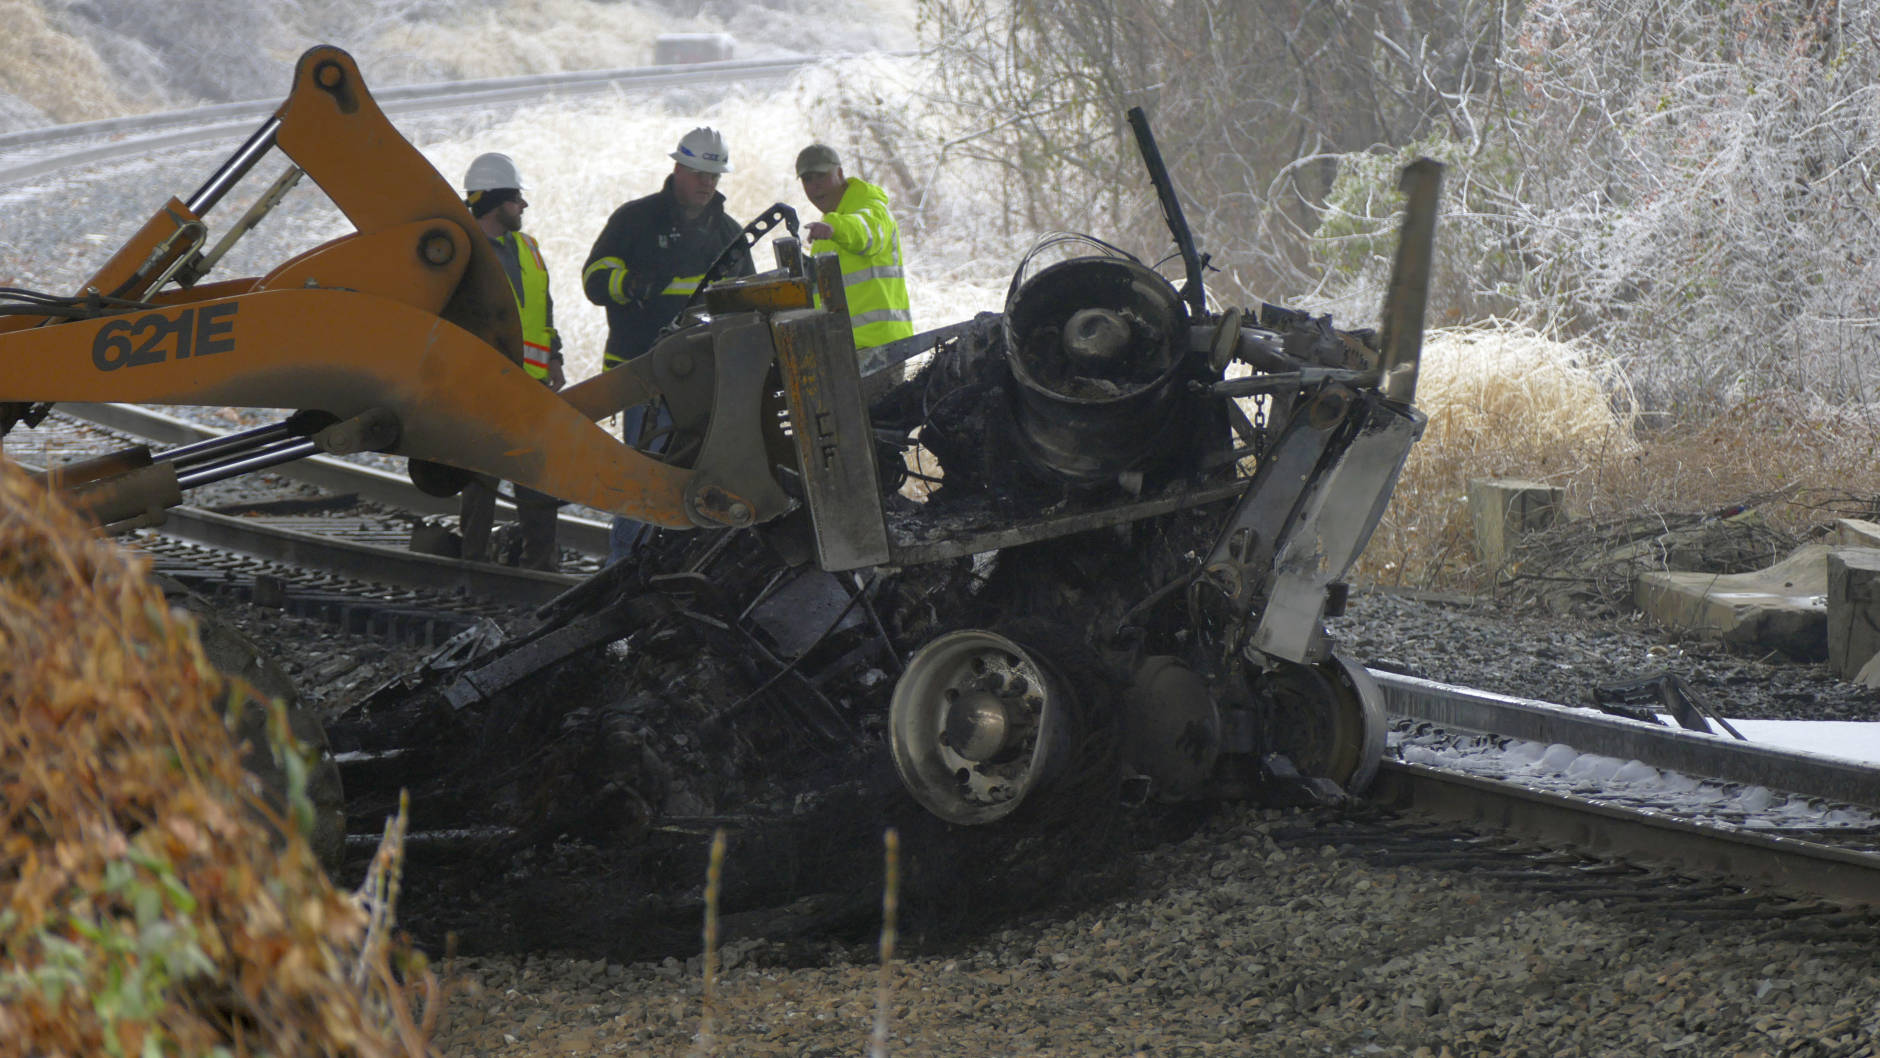 Seen from the Interstate 95 overpass from Grove Street in southwest Baltimore, Md., emergency workers extract the wreckage of a tractor trailer from railroad tracks after it fell off a bridge and exploded, in a series of accidents that shut down I-95 on Saturday, Dec. 17, 2016. An ice storm created slick conditions, sparking a chain reaction pile-up involving dozens of vehicles. (Karl Merton Ferron/The Baltimore Sun via AP)